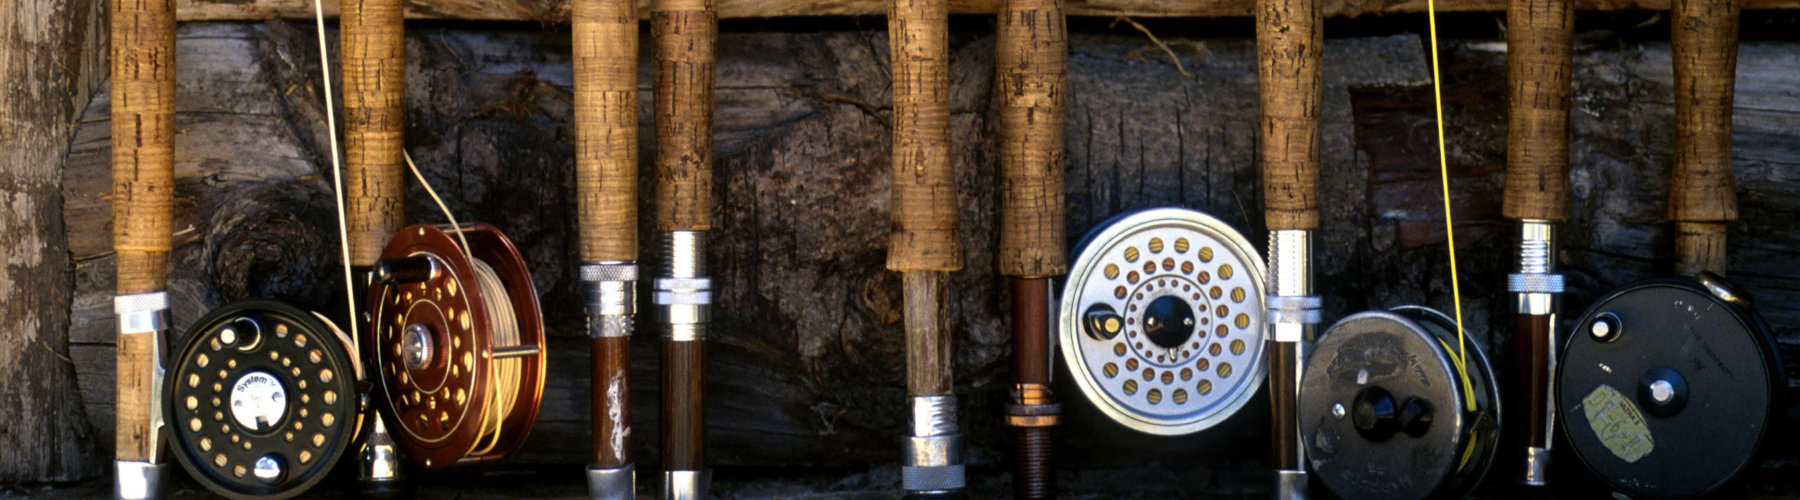 Fly Fishing Rods, Reels, and Outfits